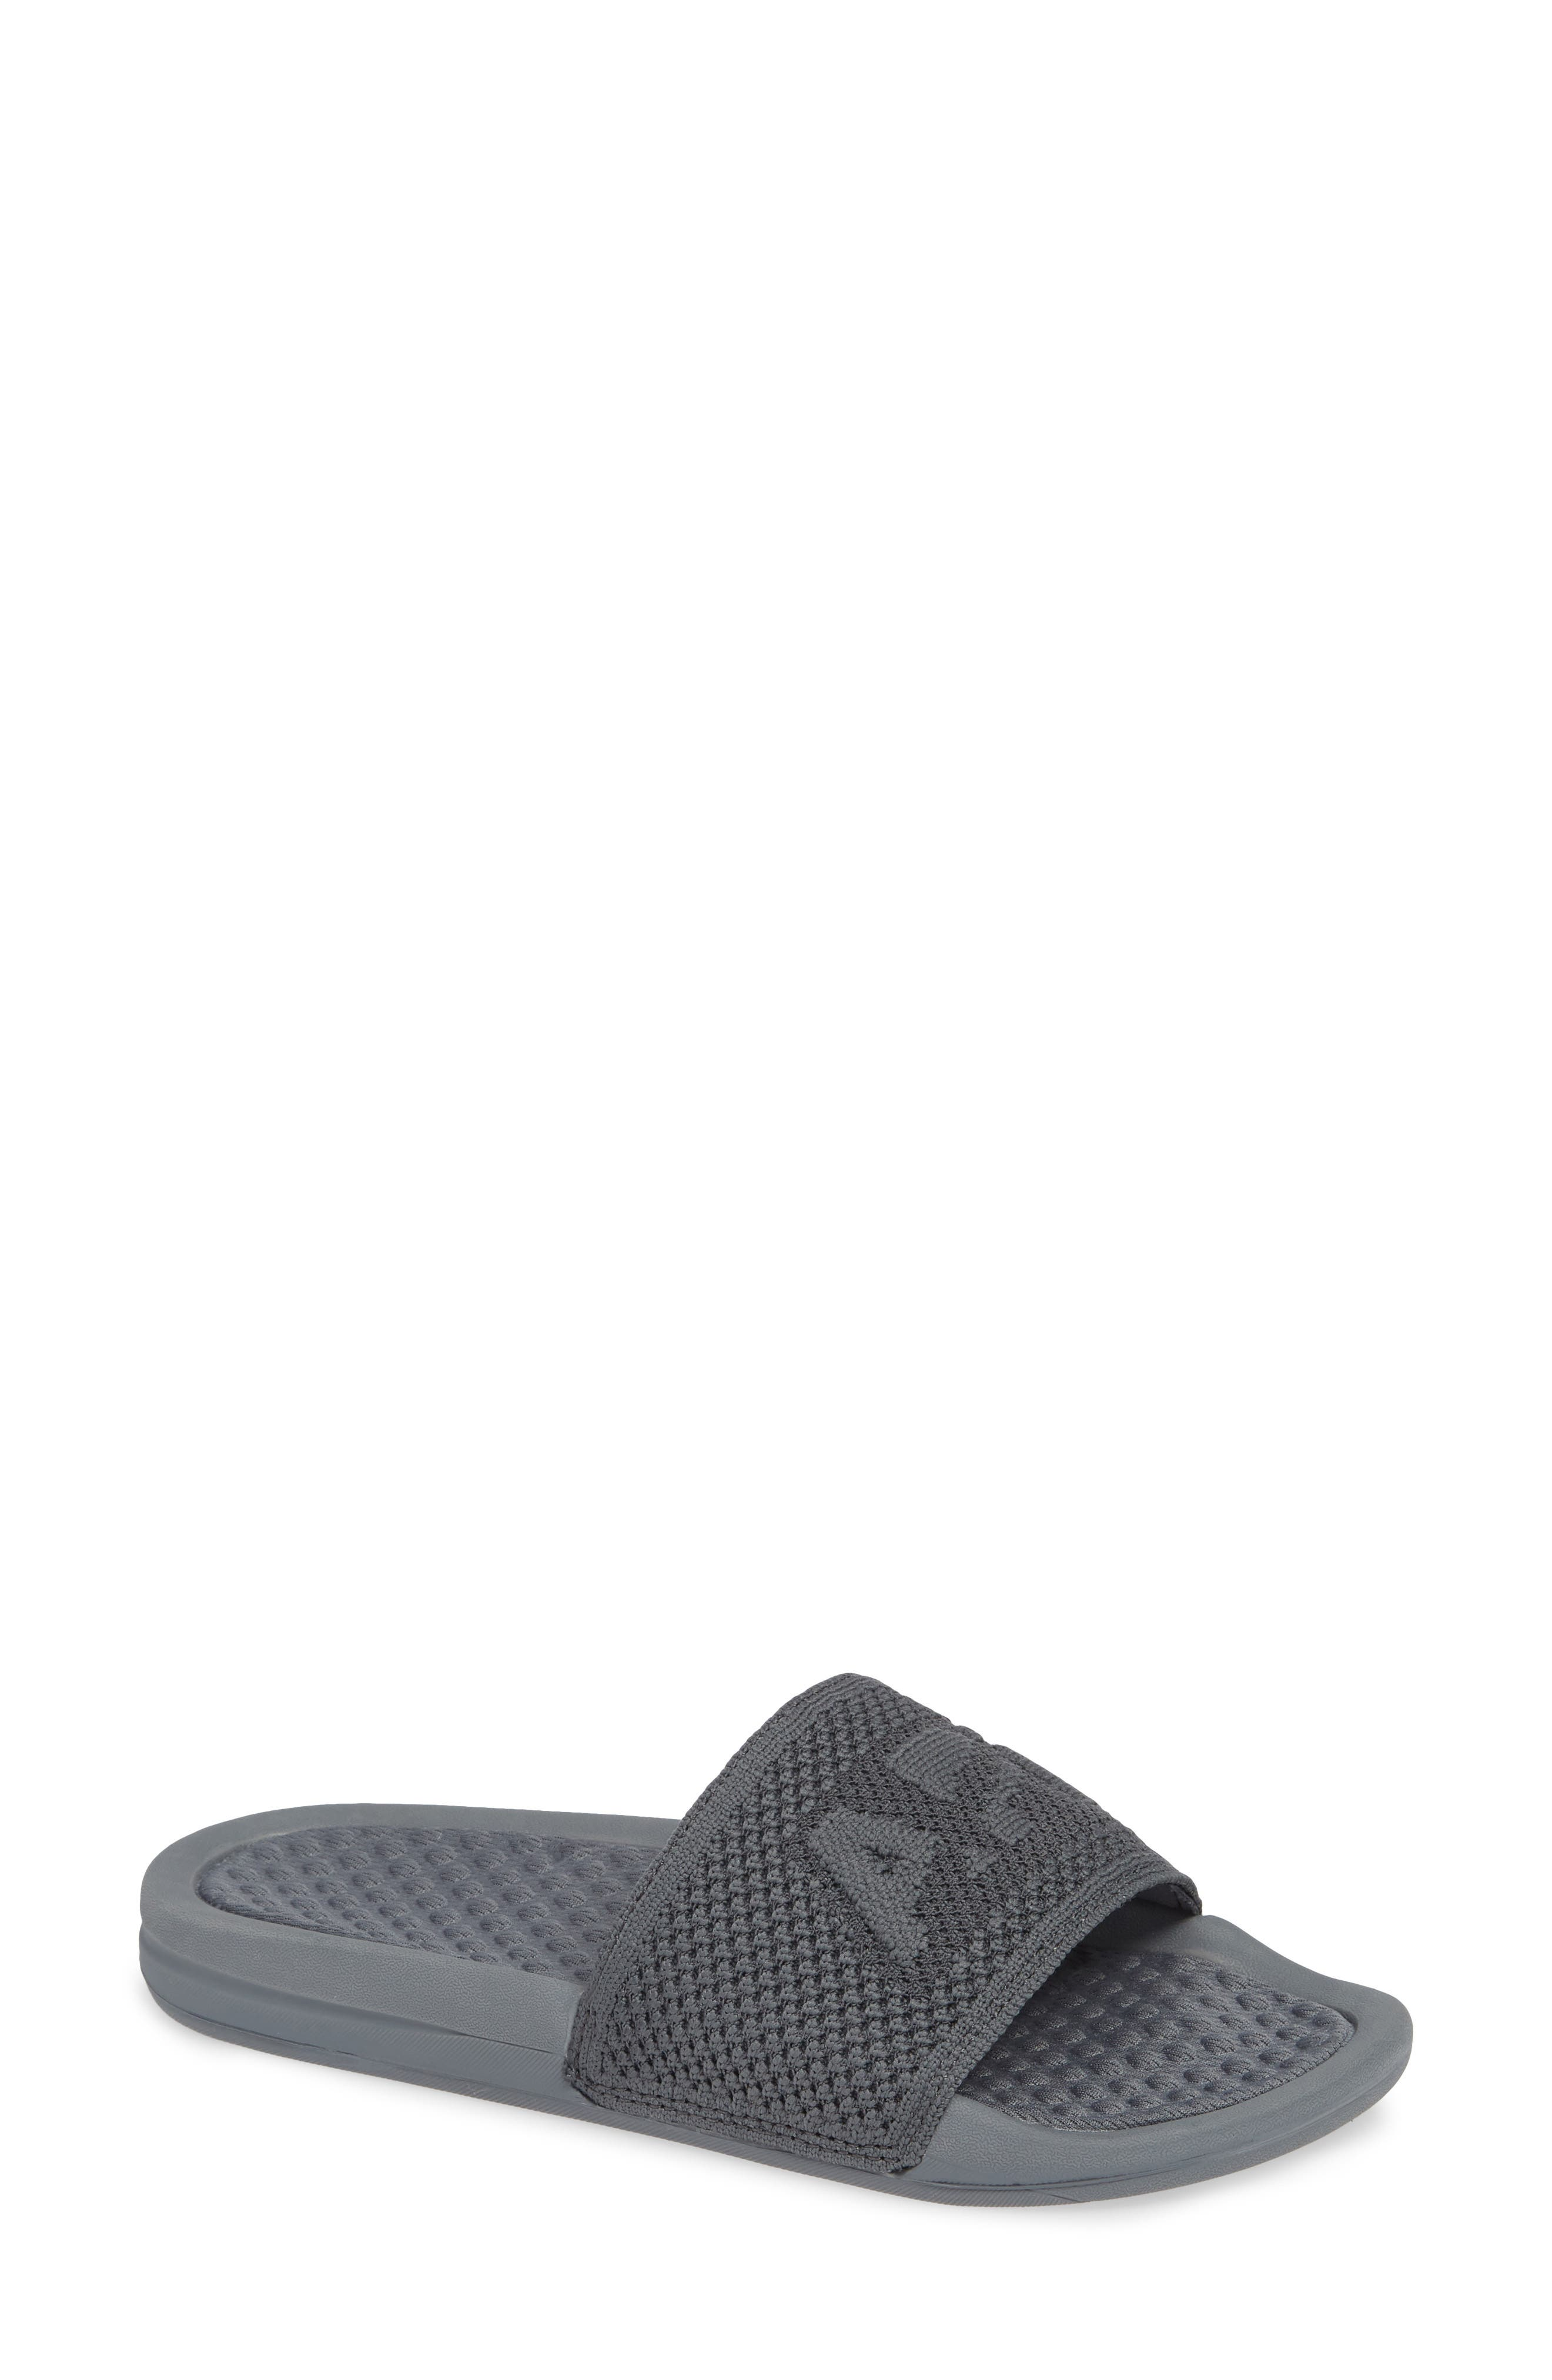 APL ATHLETIC PROPULSION LABS Women'S Logo Techloom Knit Pool Slide Sandals in Cosmic Grey